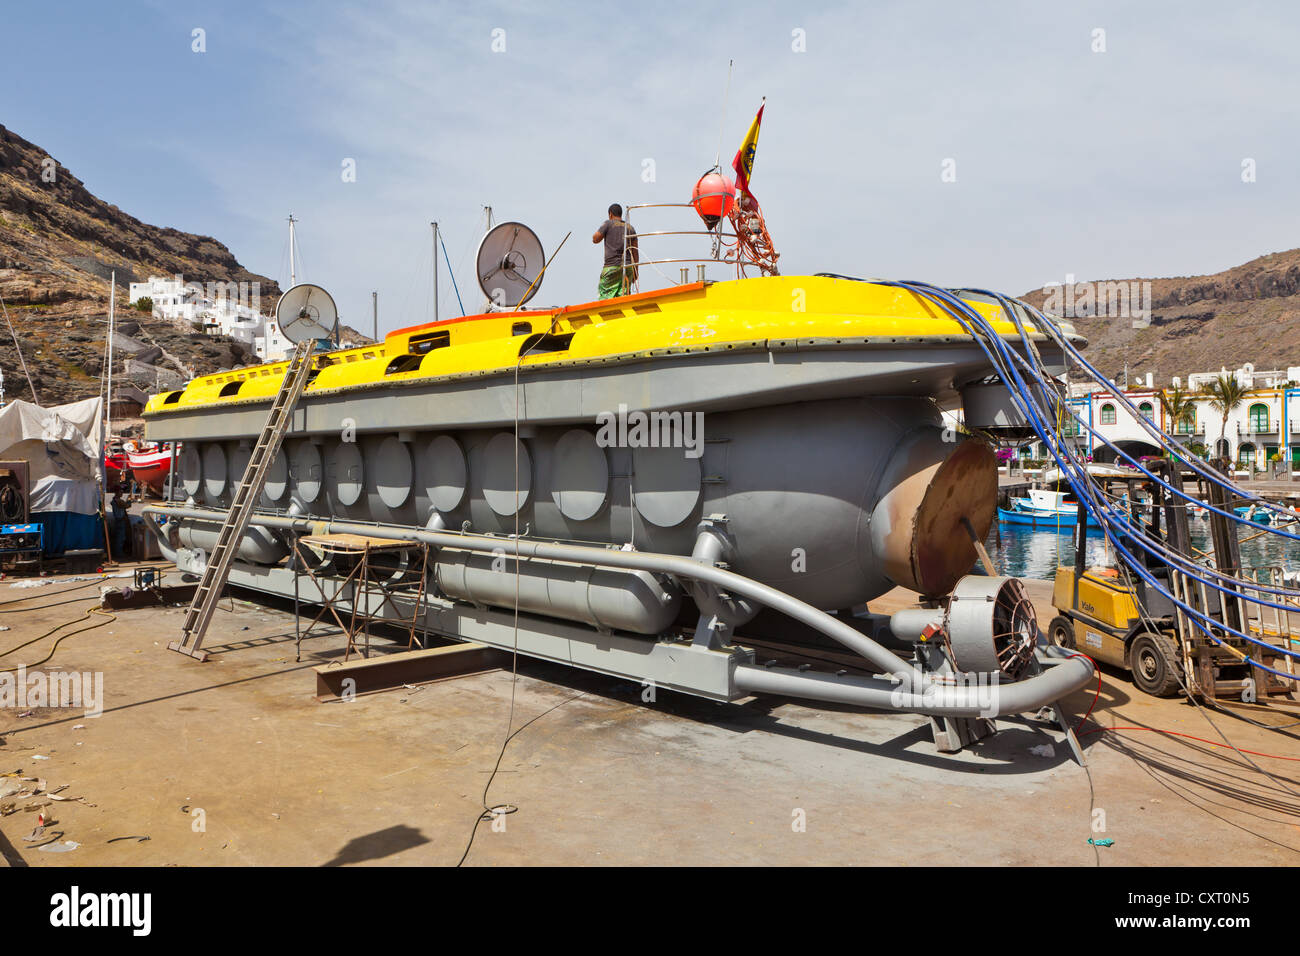 Submarine for tourists in the dry dock, Puerto de Mogan, Gran Canaria, Canary Islands, Spain, Europe, PublicGround - Stock Image